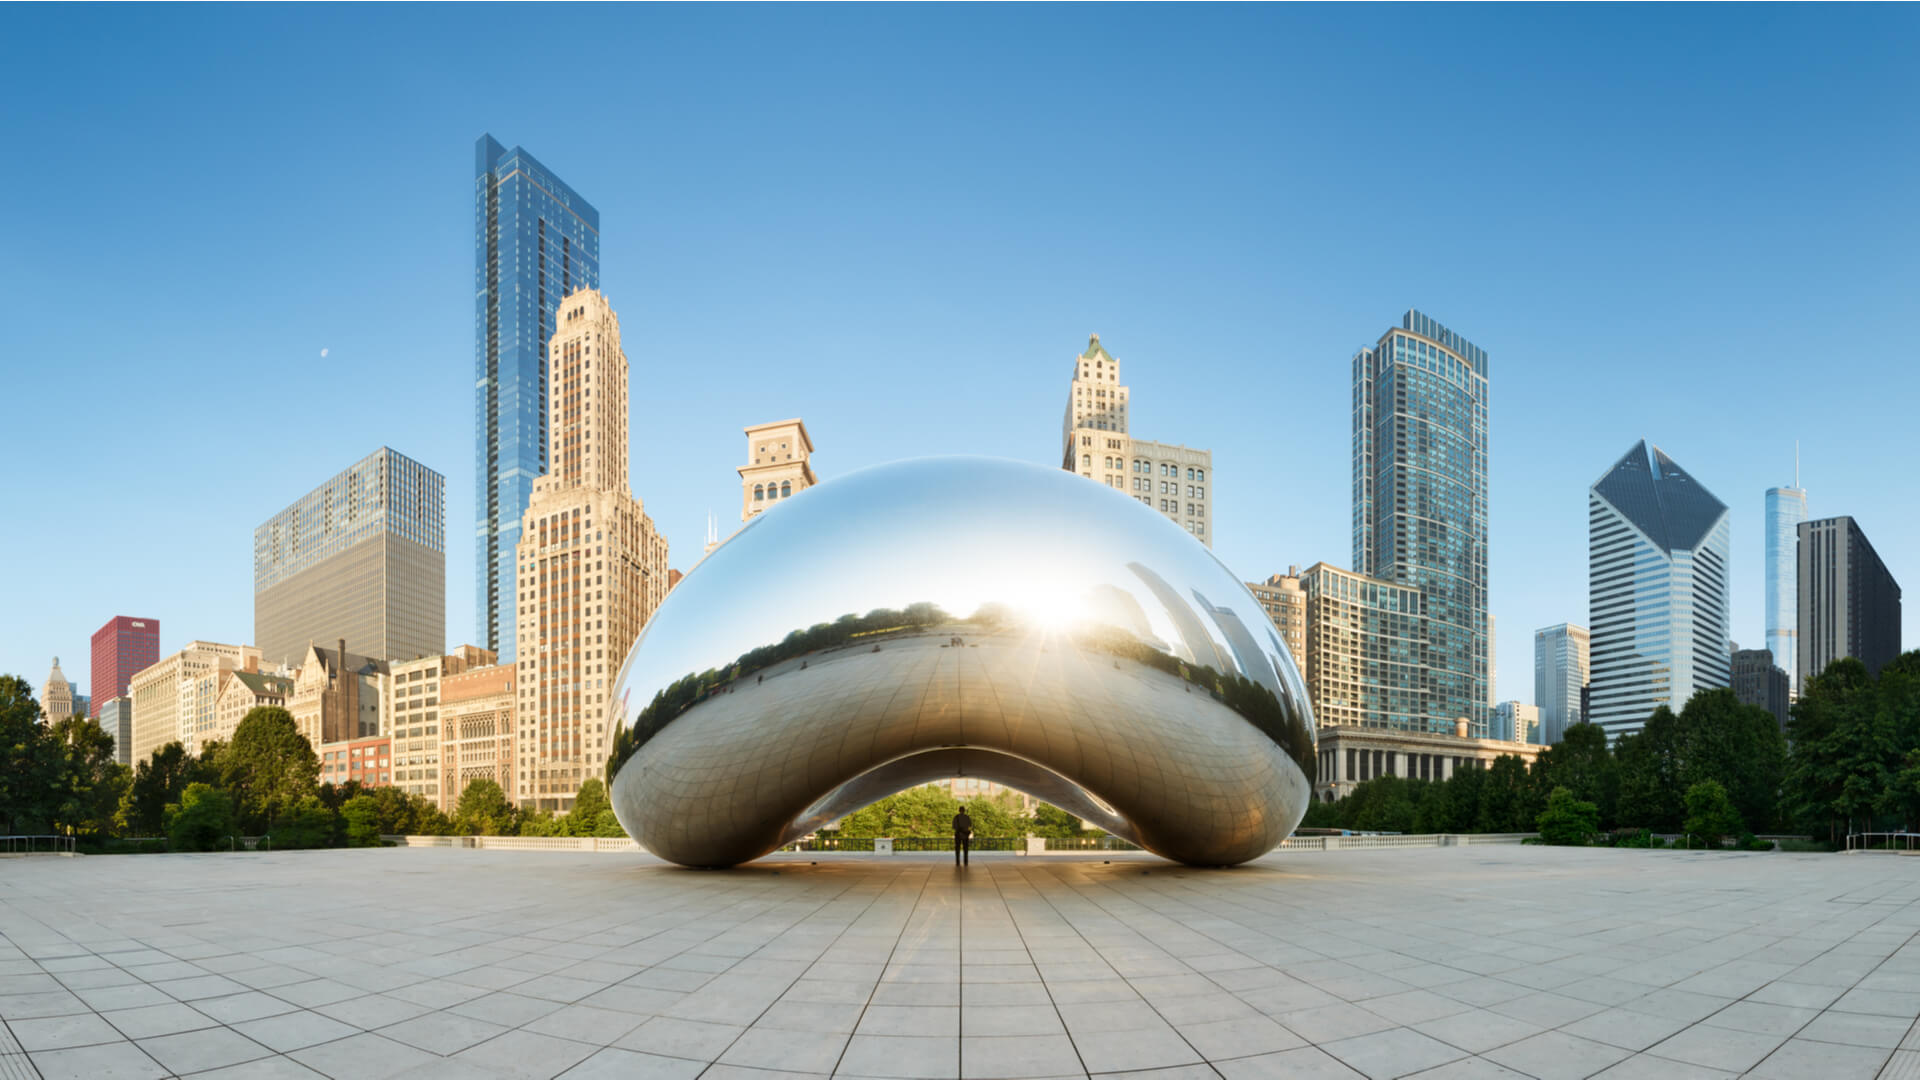 Panoramic image of The Bean in the morning in Millennium Park